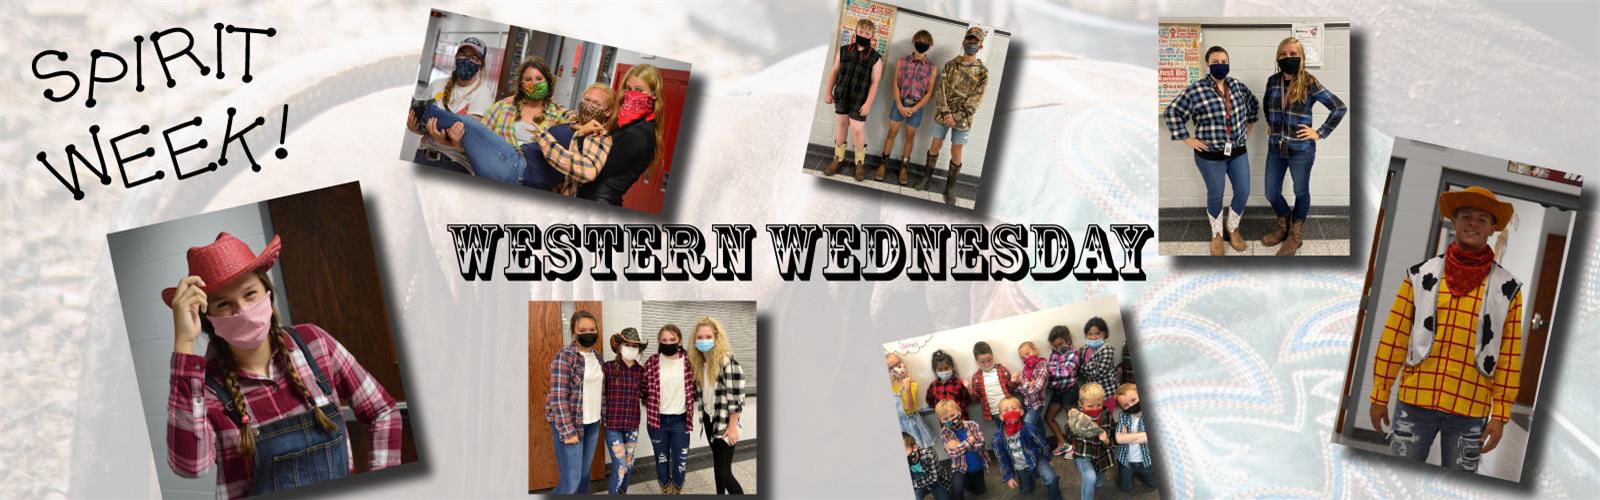 Various pictures of staff and students dressed up for Western Wednesday during sprit week